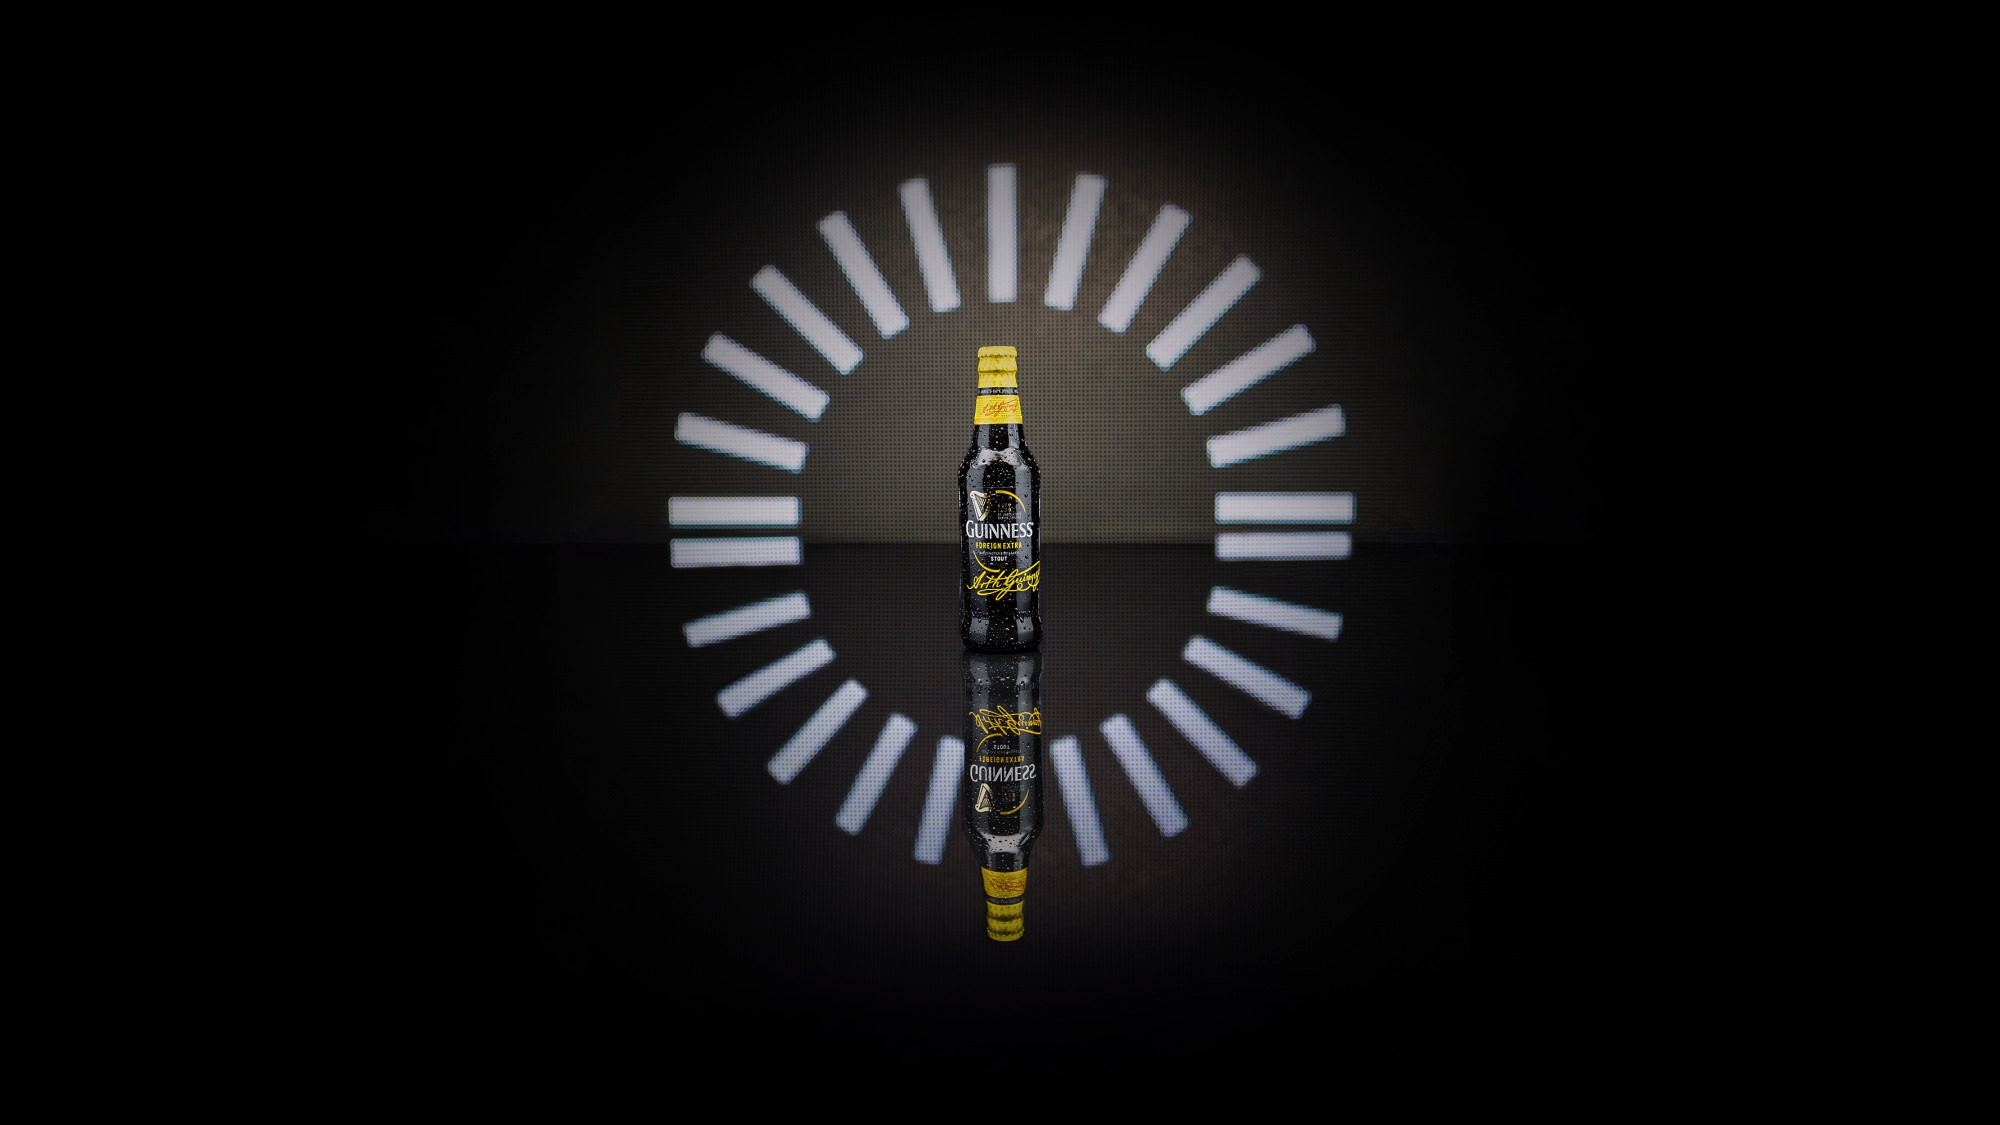 Campaign image of Guinness bottle for Guinness Campaign #MadeOfBlack Made of Black | Michelle Wastie Photography